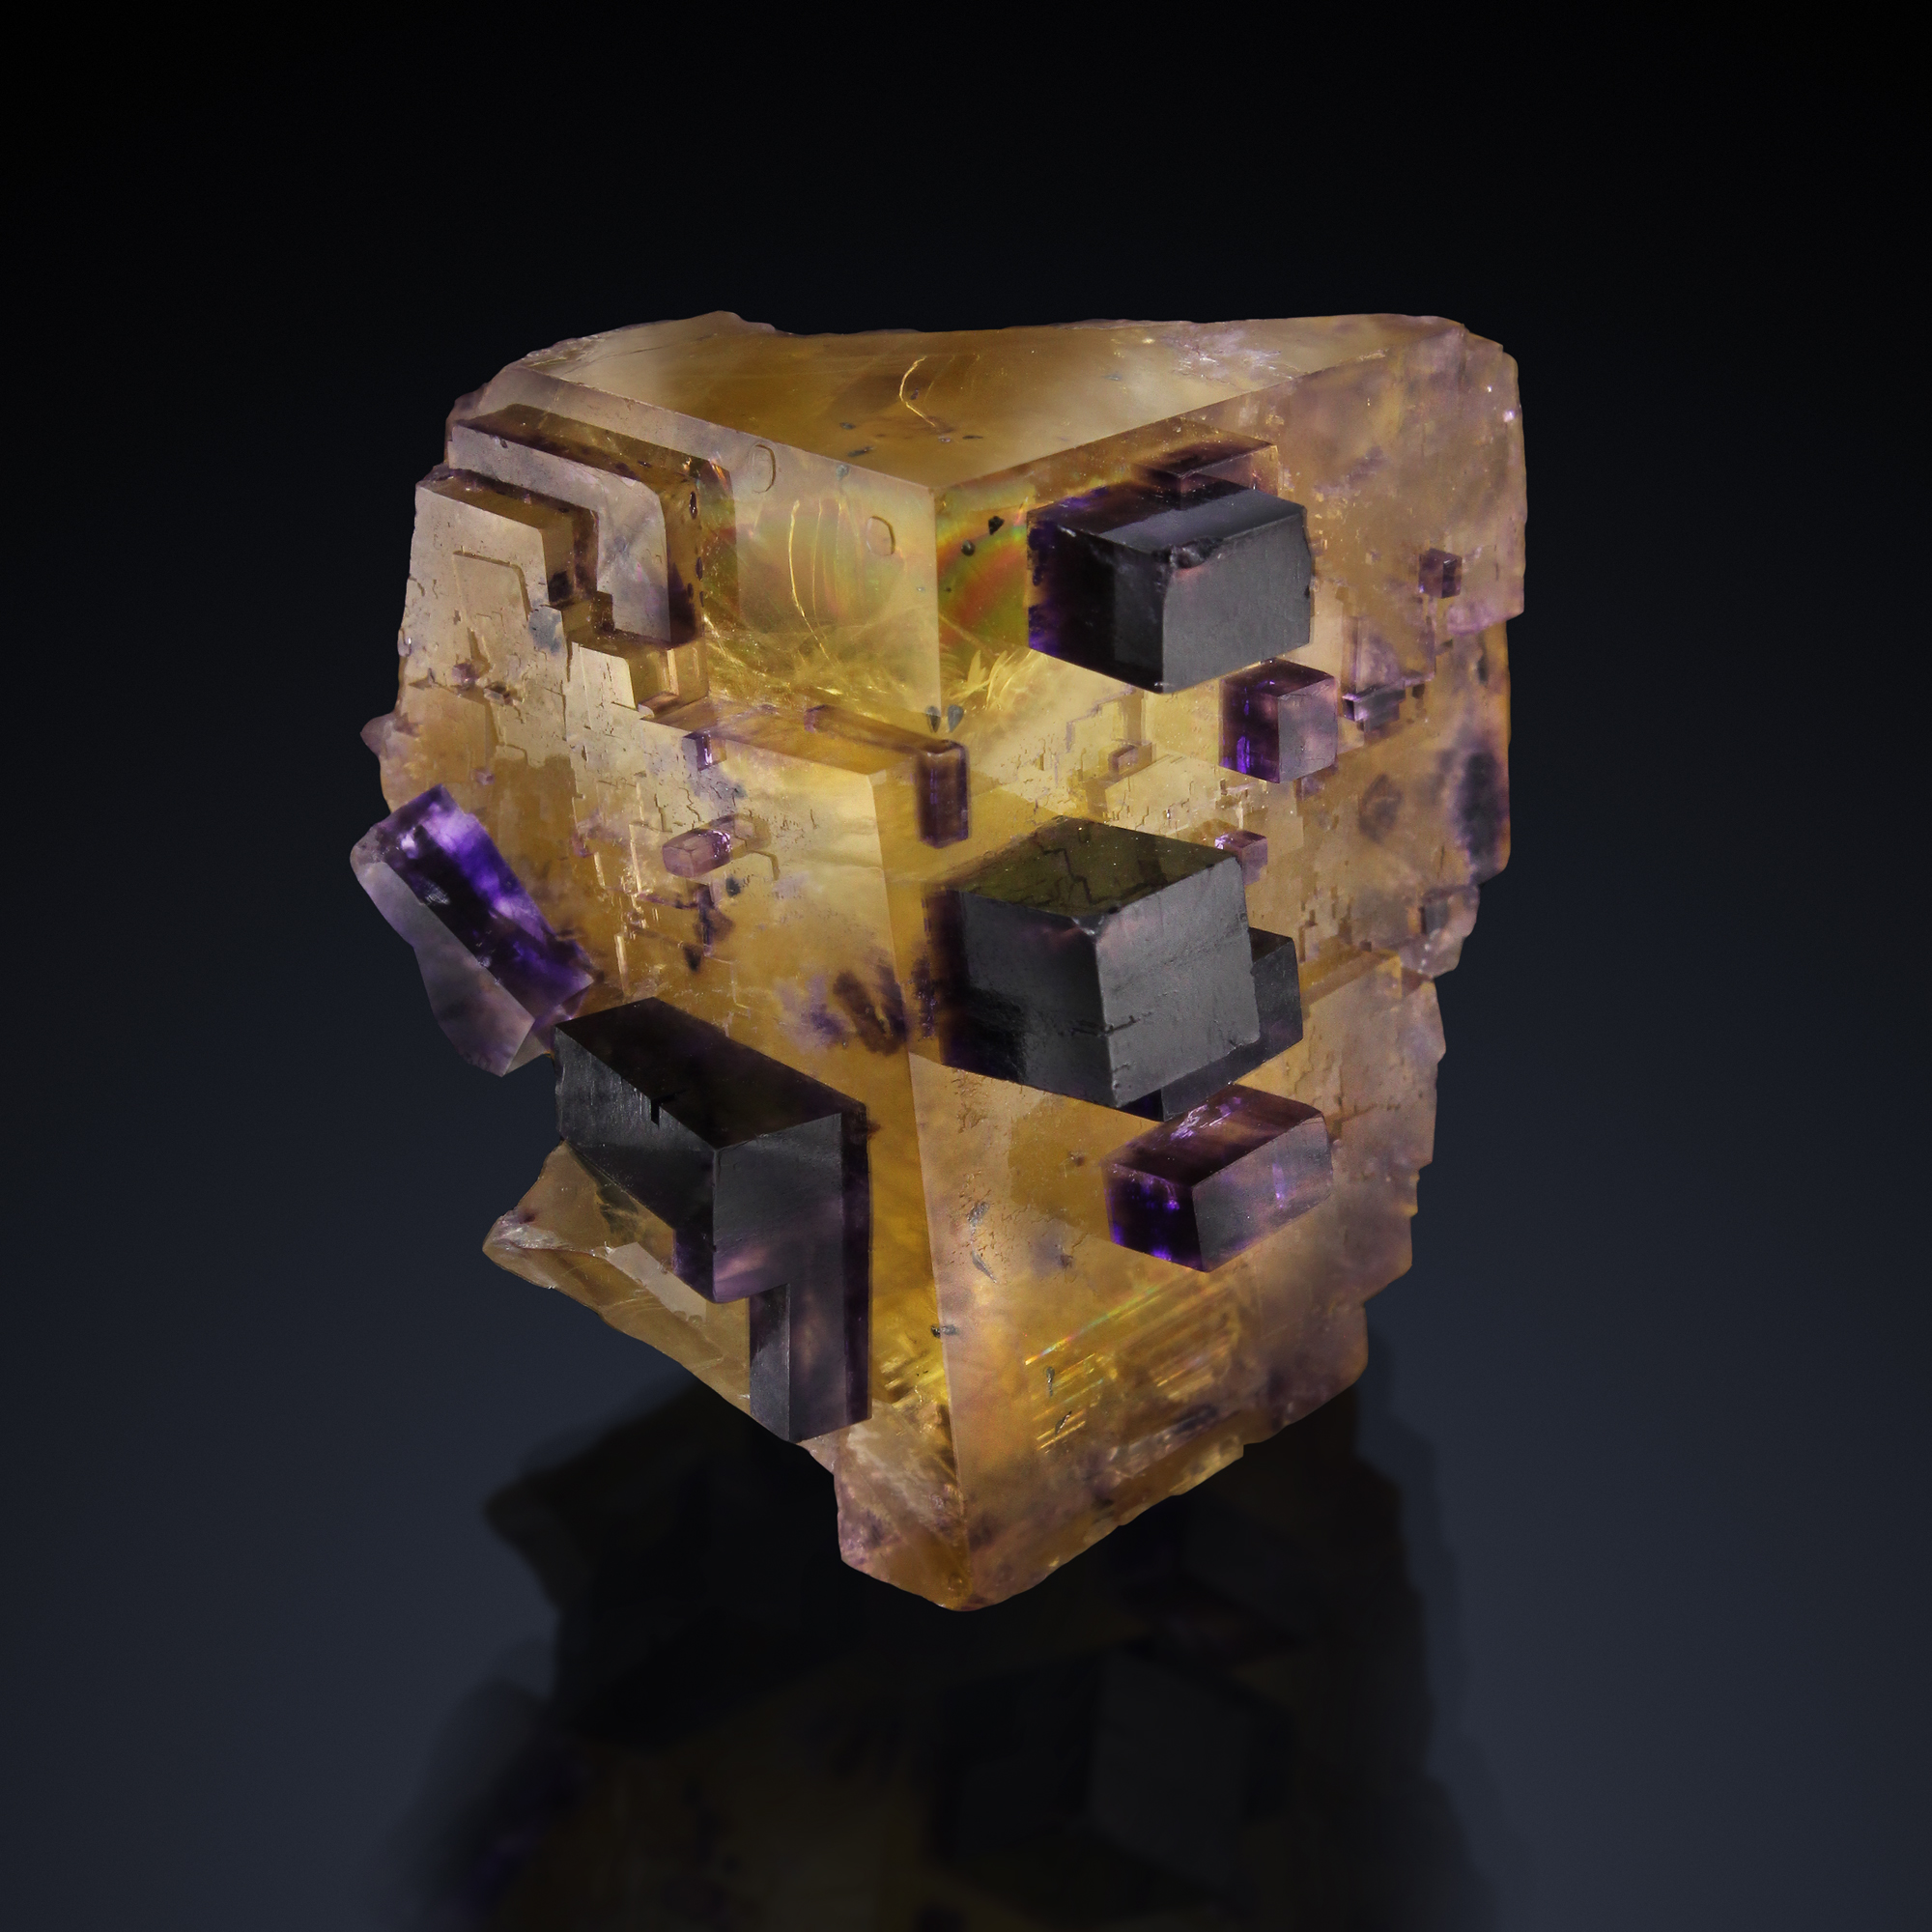 FLUORITE - Victory Mine, Cave-in-Rock, Cave-in-Rock Sub-District, Hardin Co., Illinois, USA   -Private collection